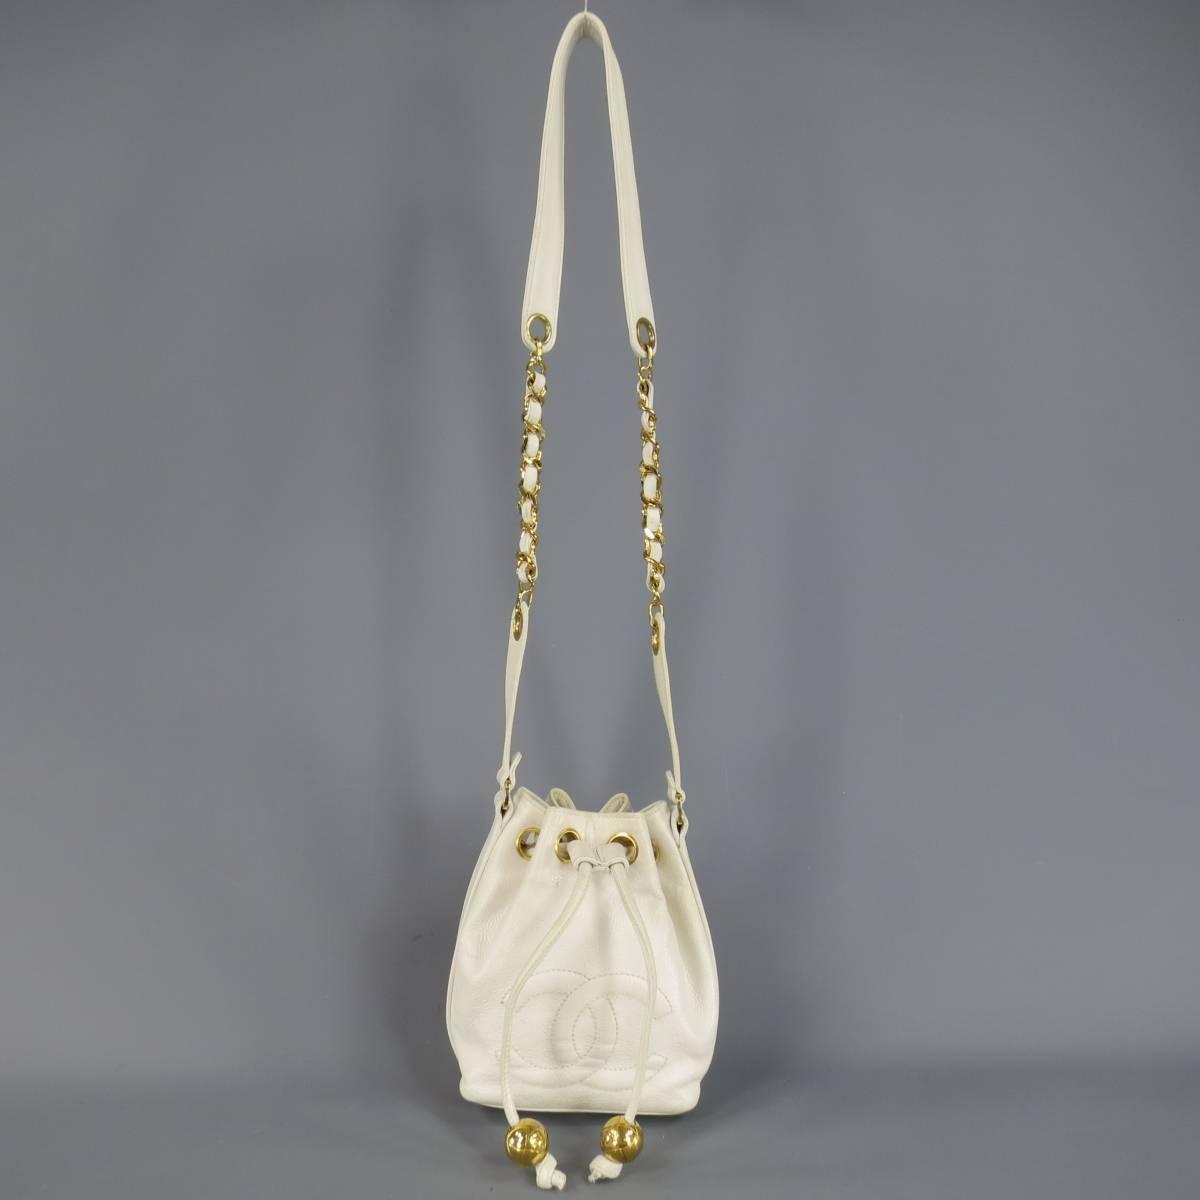 Vintage 1980 S Chanel White Leather Gold Chain Bucket